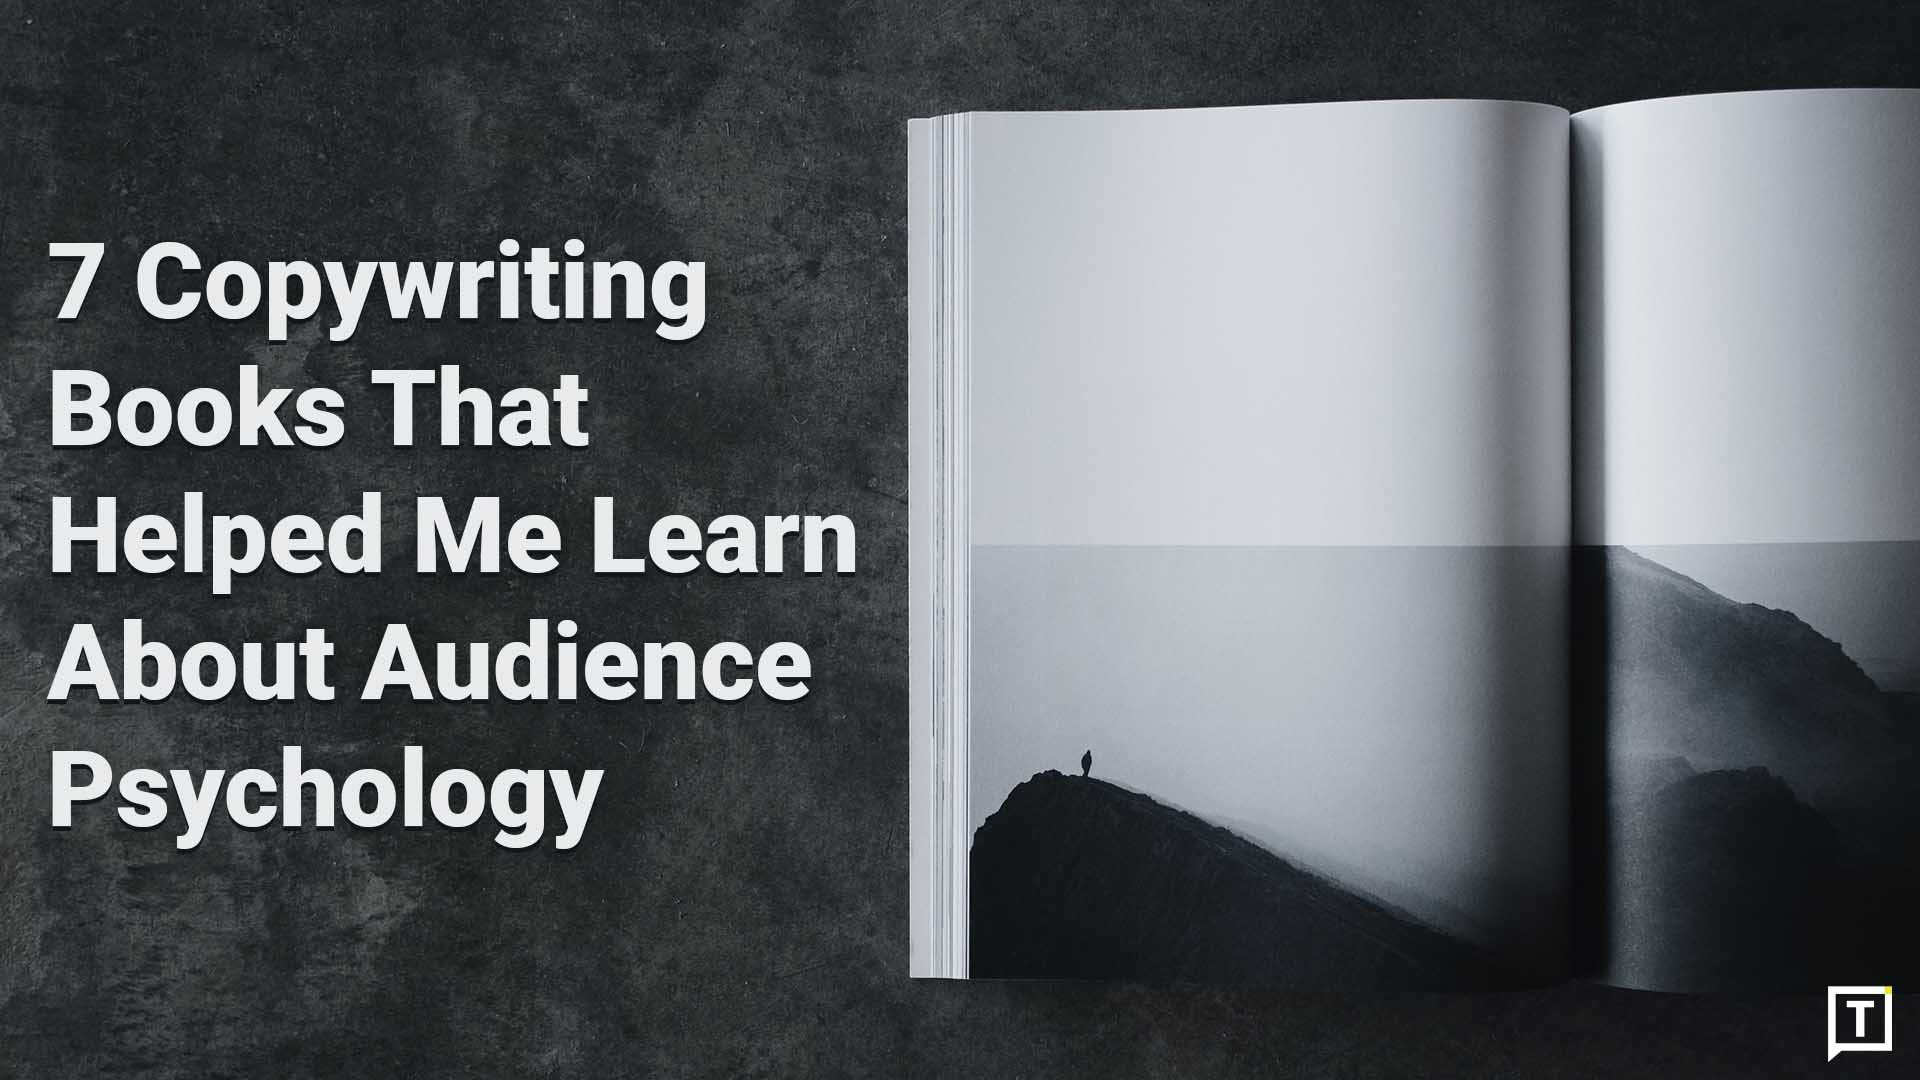 7 Copywriting Books That Helped Me Learn About Audience Psychology Cover